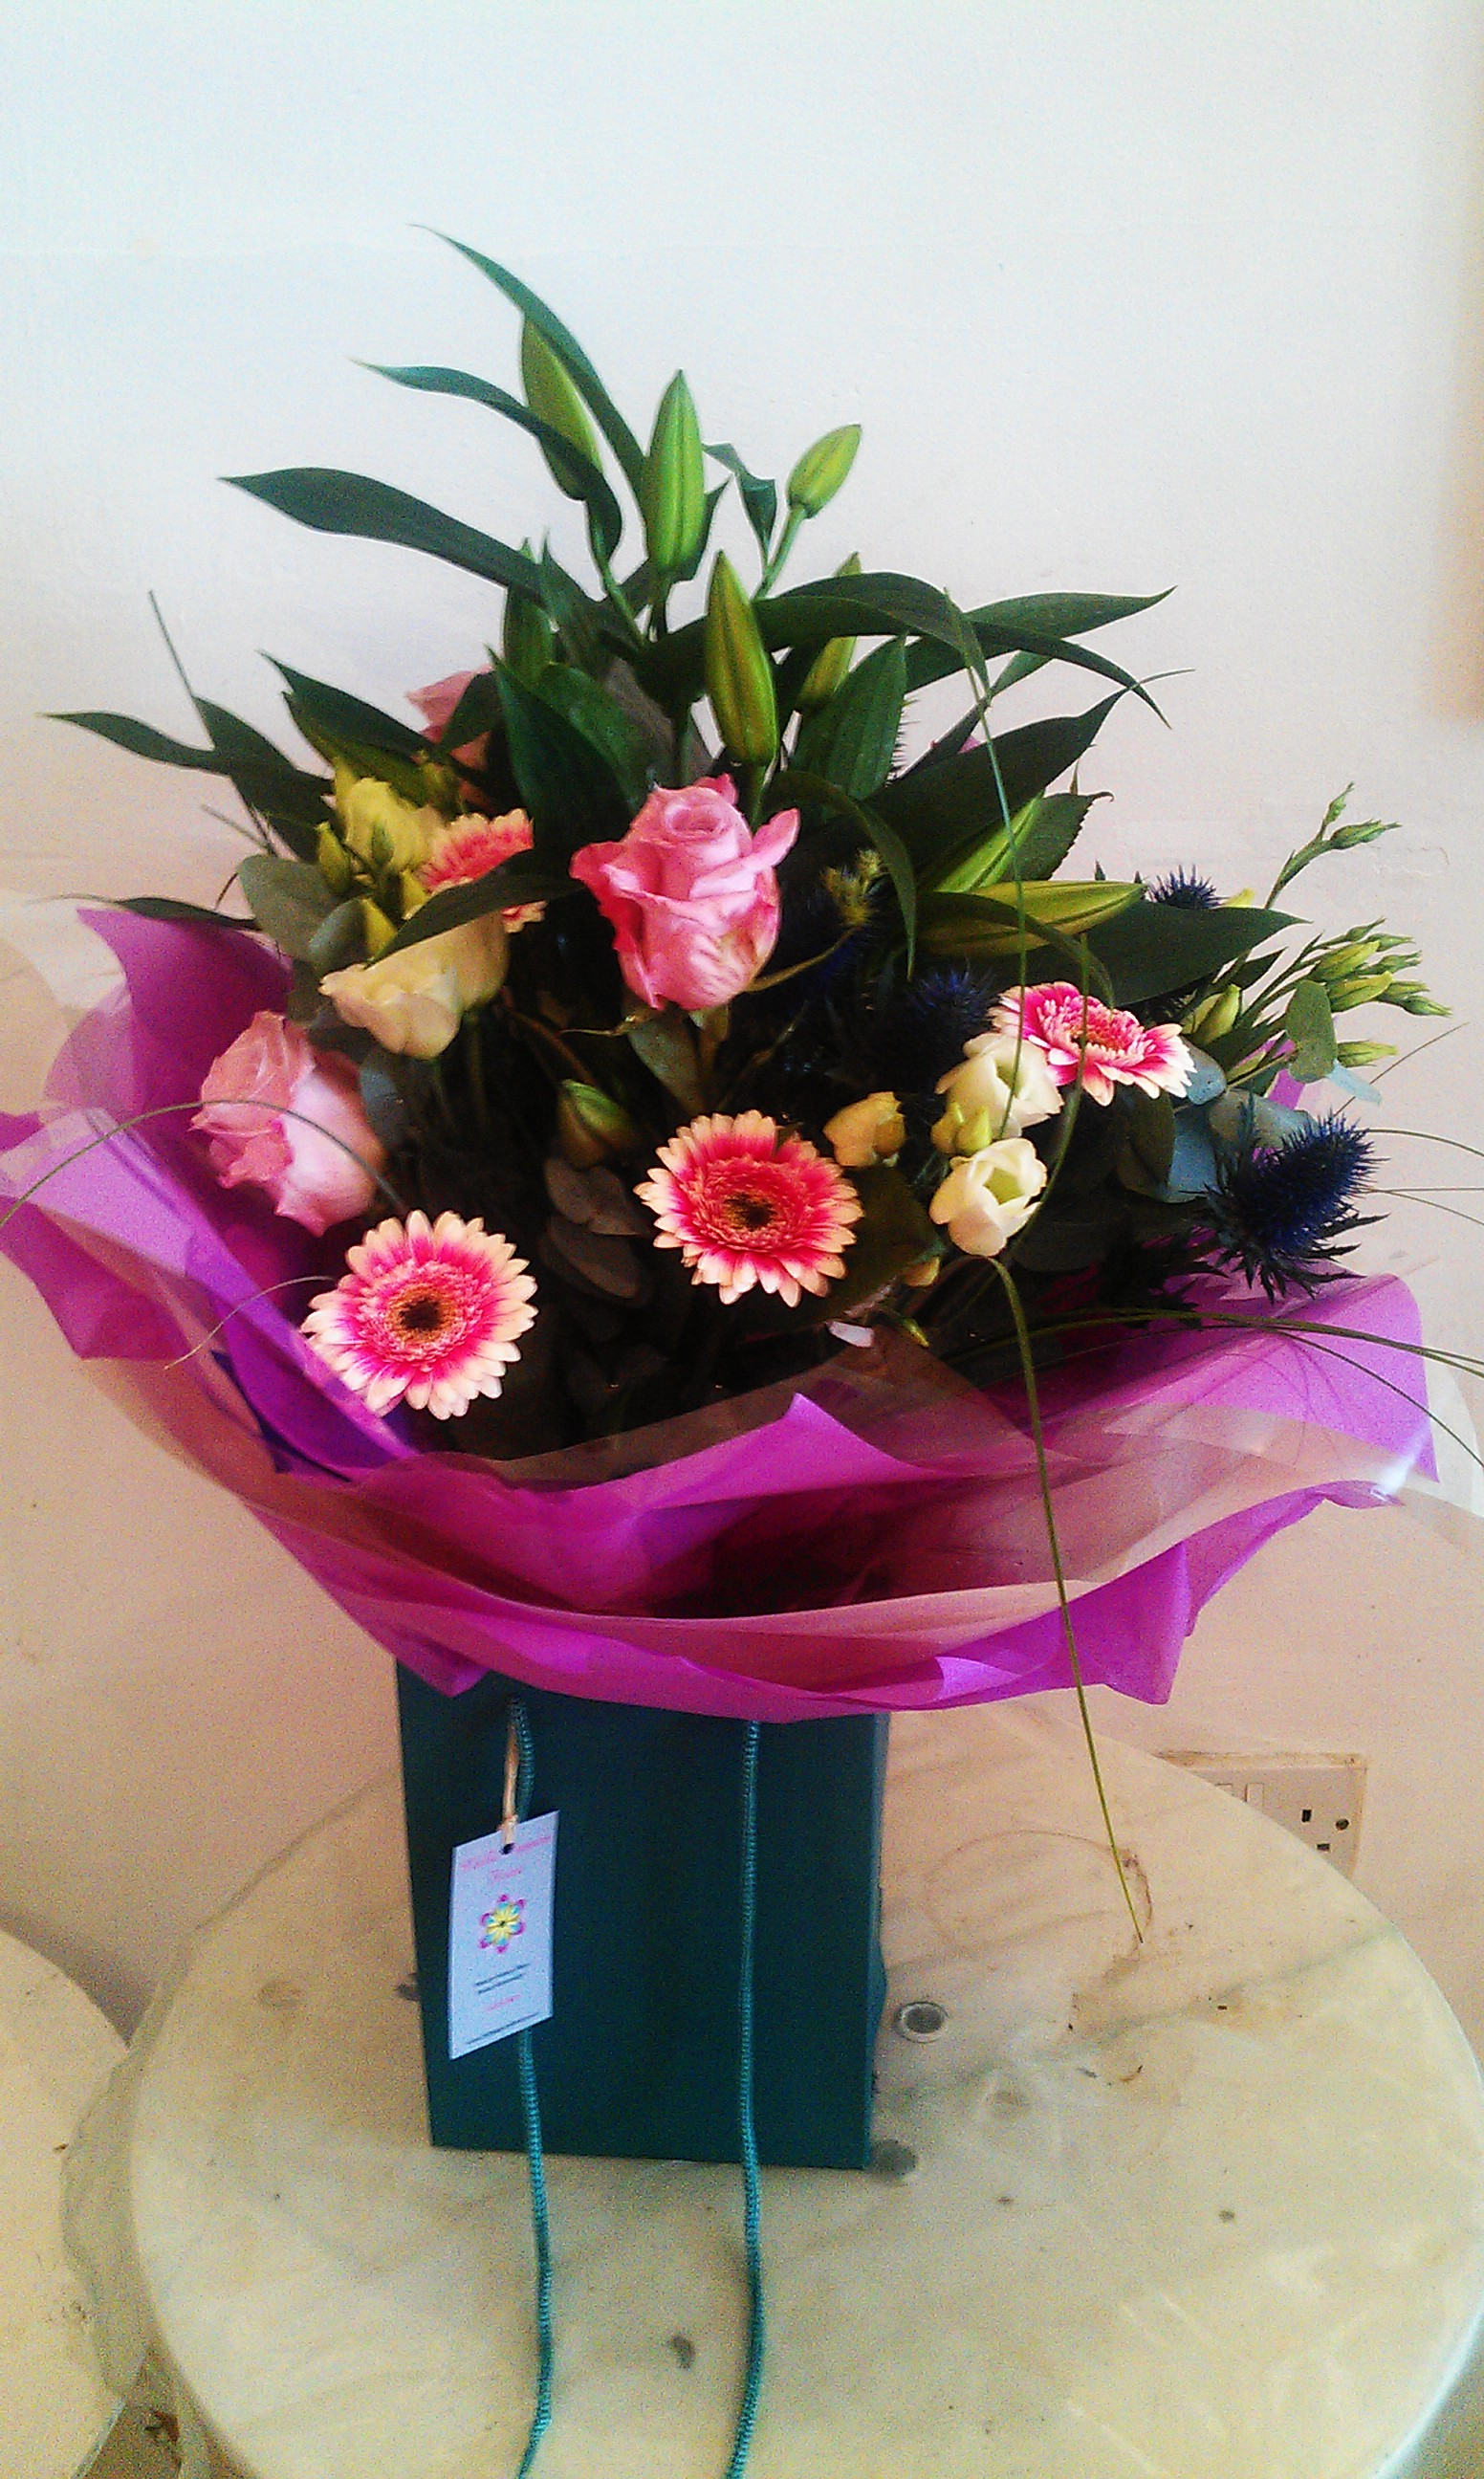 Chilli Peppers florist, Desborough